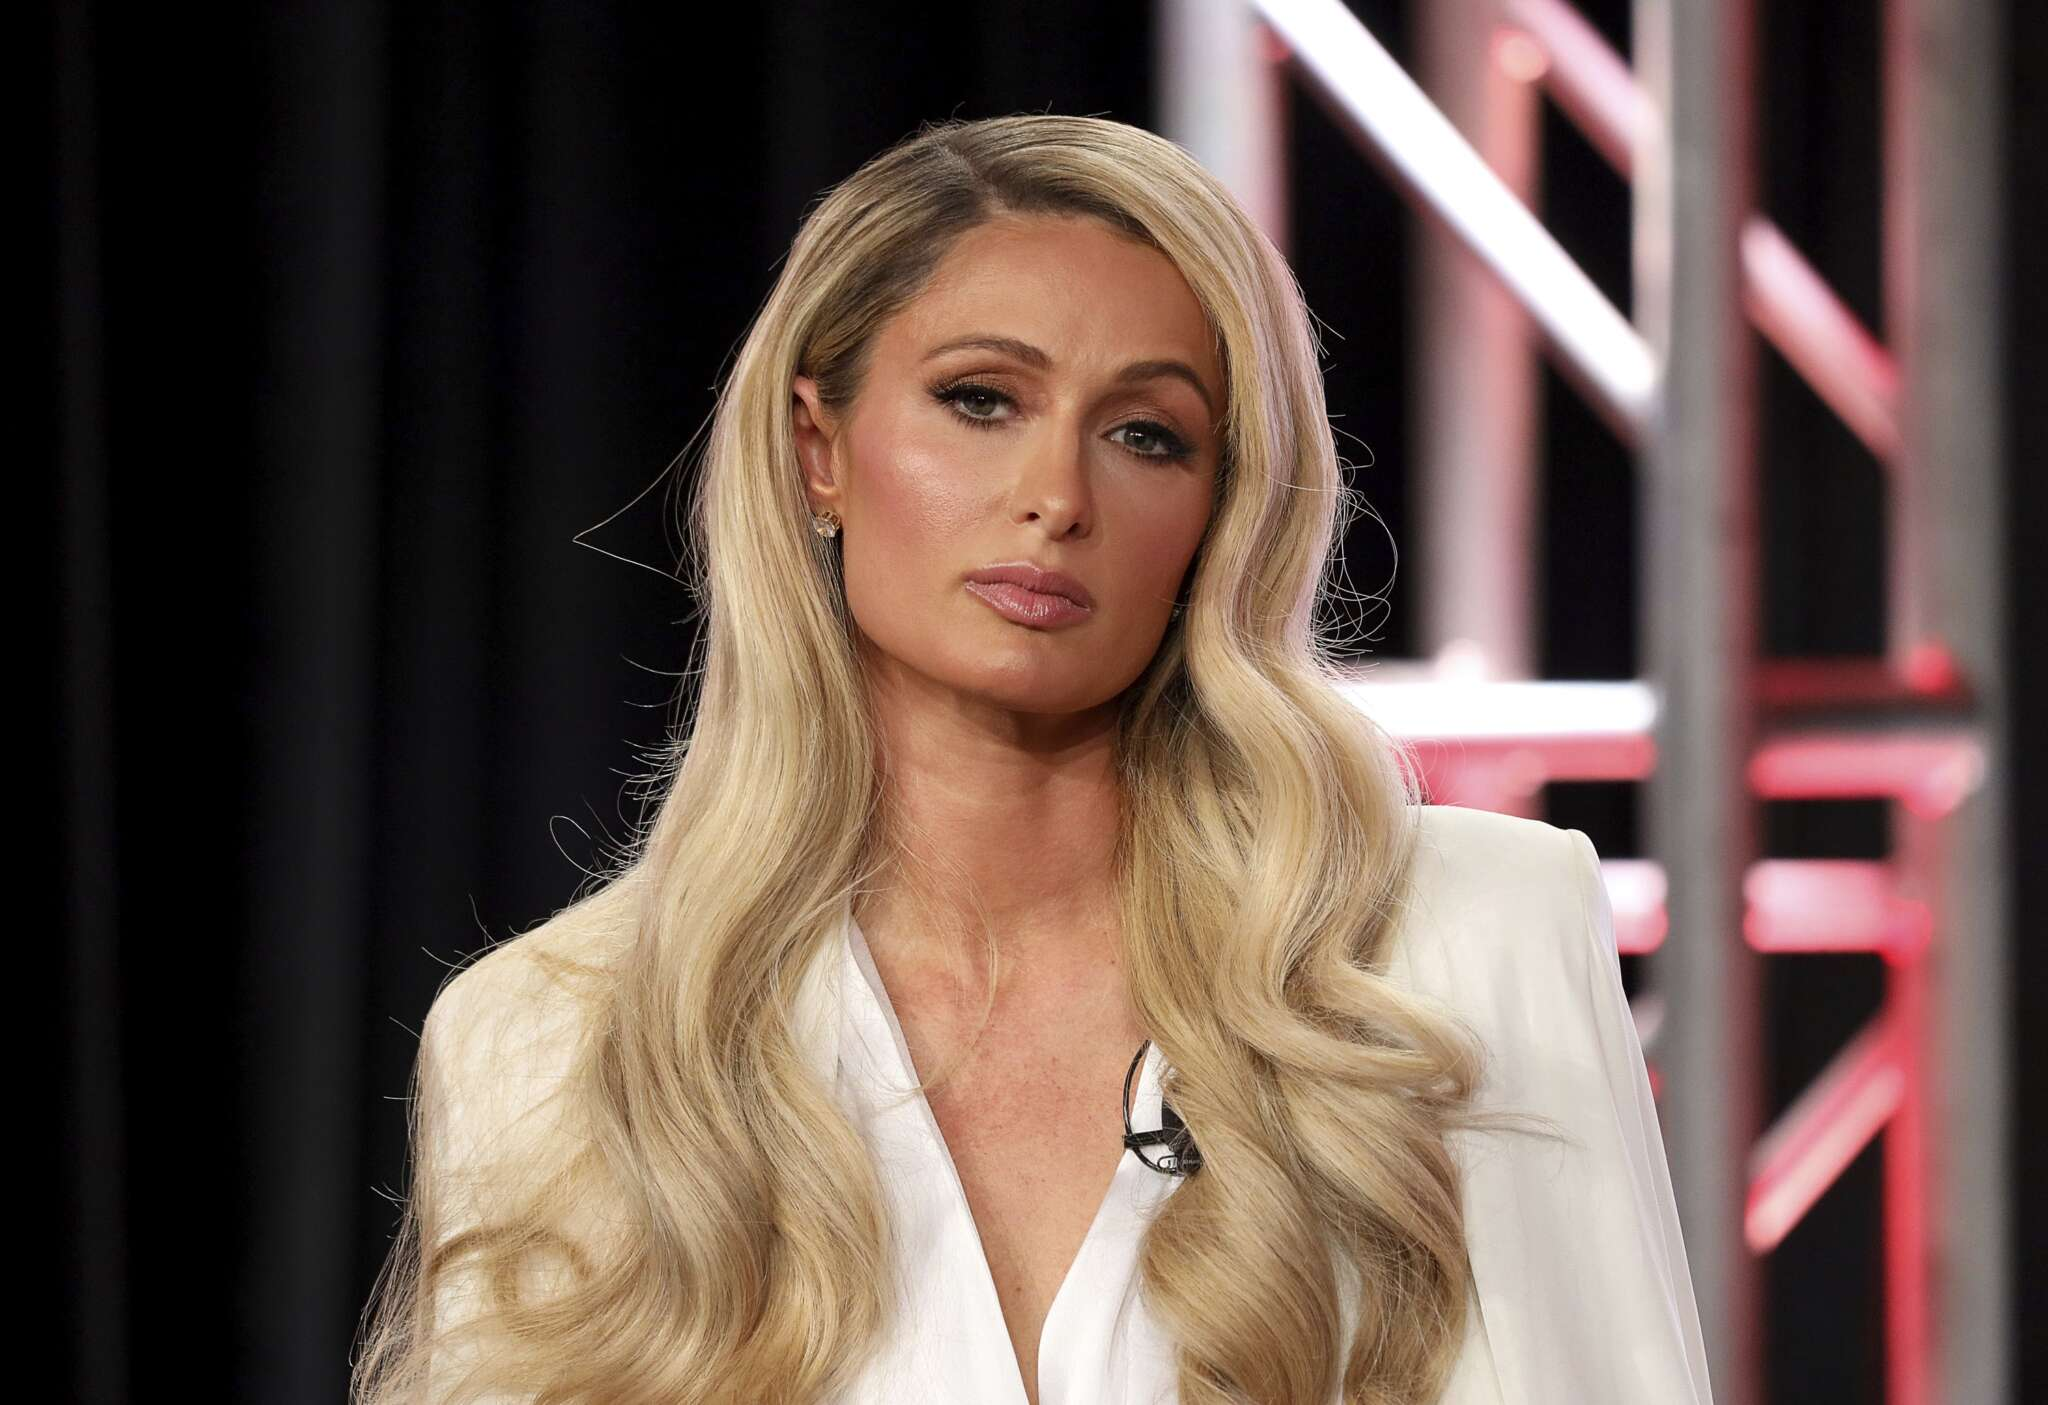 Paris Hilton is to undergo IVF after seeking advice from Kim Kardashian